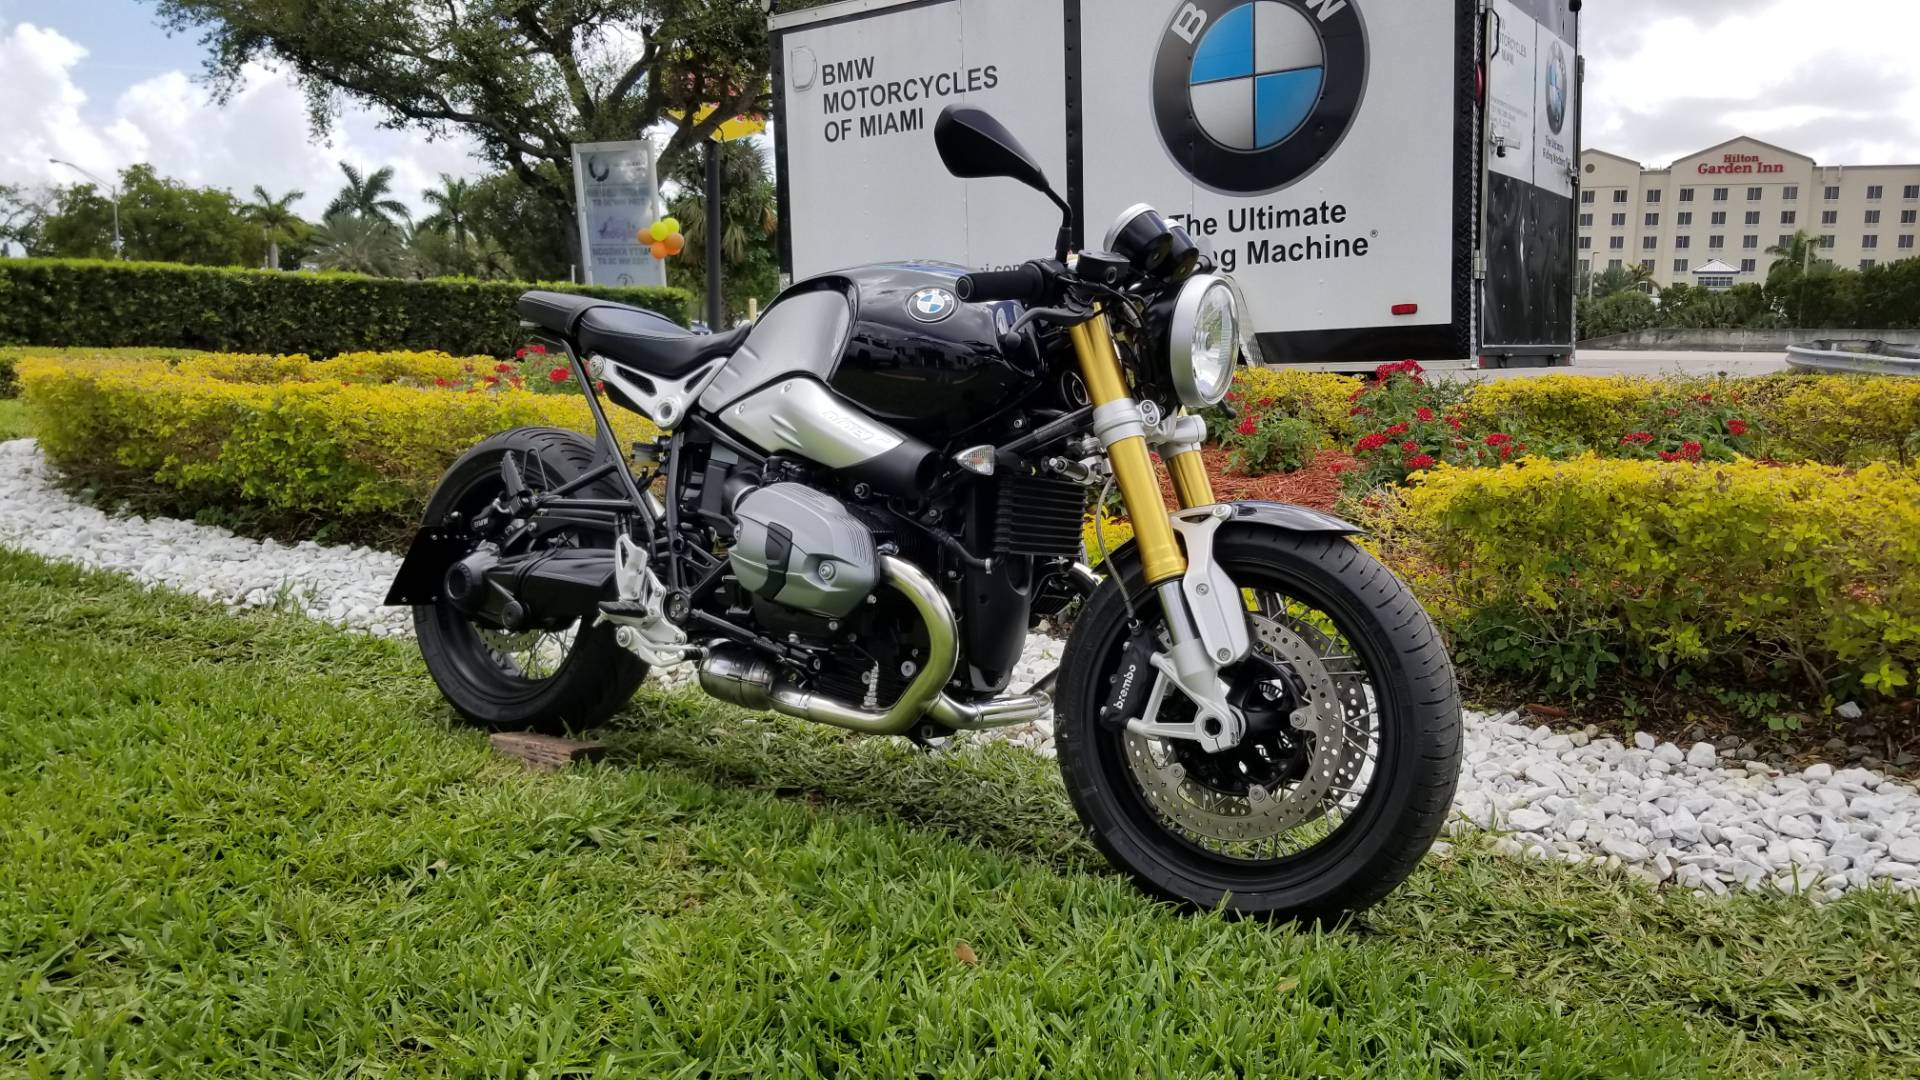 Used 2017 BMW R nine T For Sale, Pre owned BMW R nineT For Sale, BMW Motorcycle RnineT, BMW Motorcycles of Miami, Motorcycles of Miami, Motorcycles Miami - Photo 18